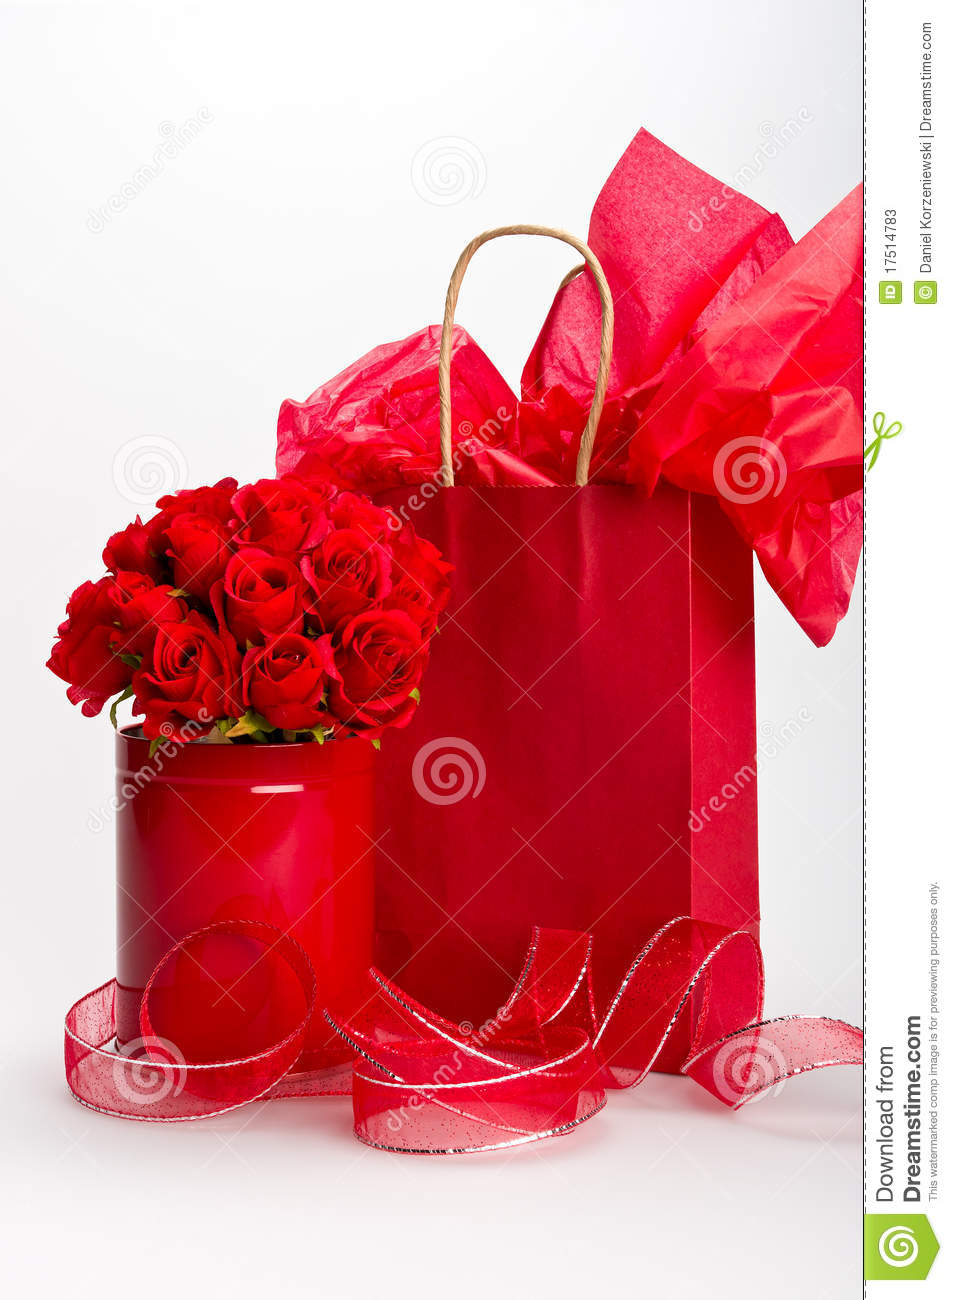 Gifts for St. Valentine